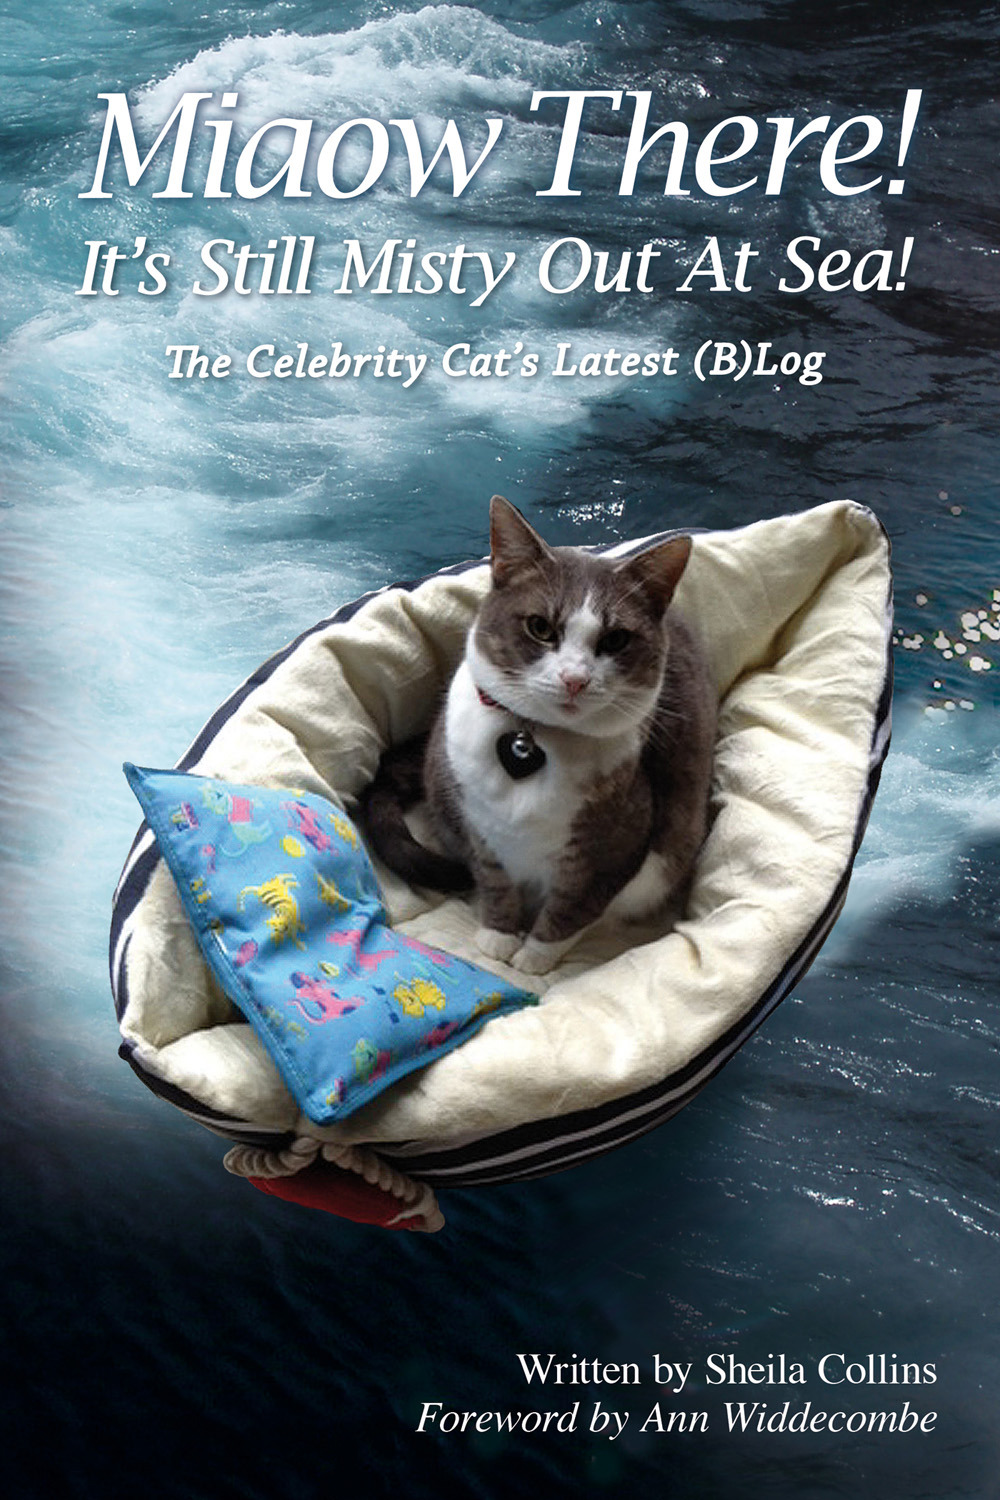 Collins, Sheila - Miaow There! It's Still Misty Out At Sea!, ebook